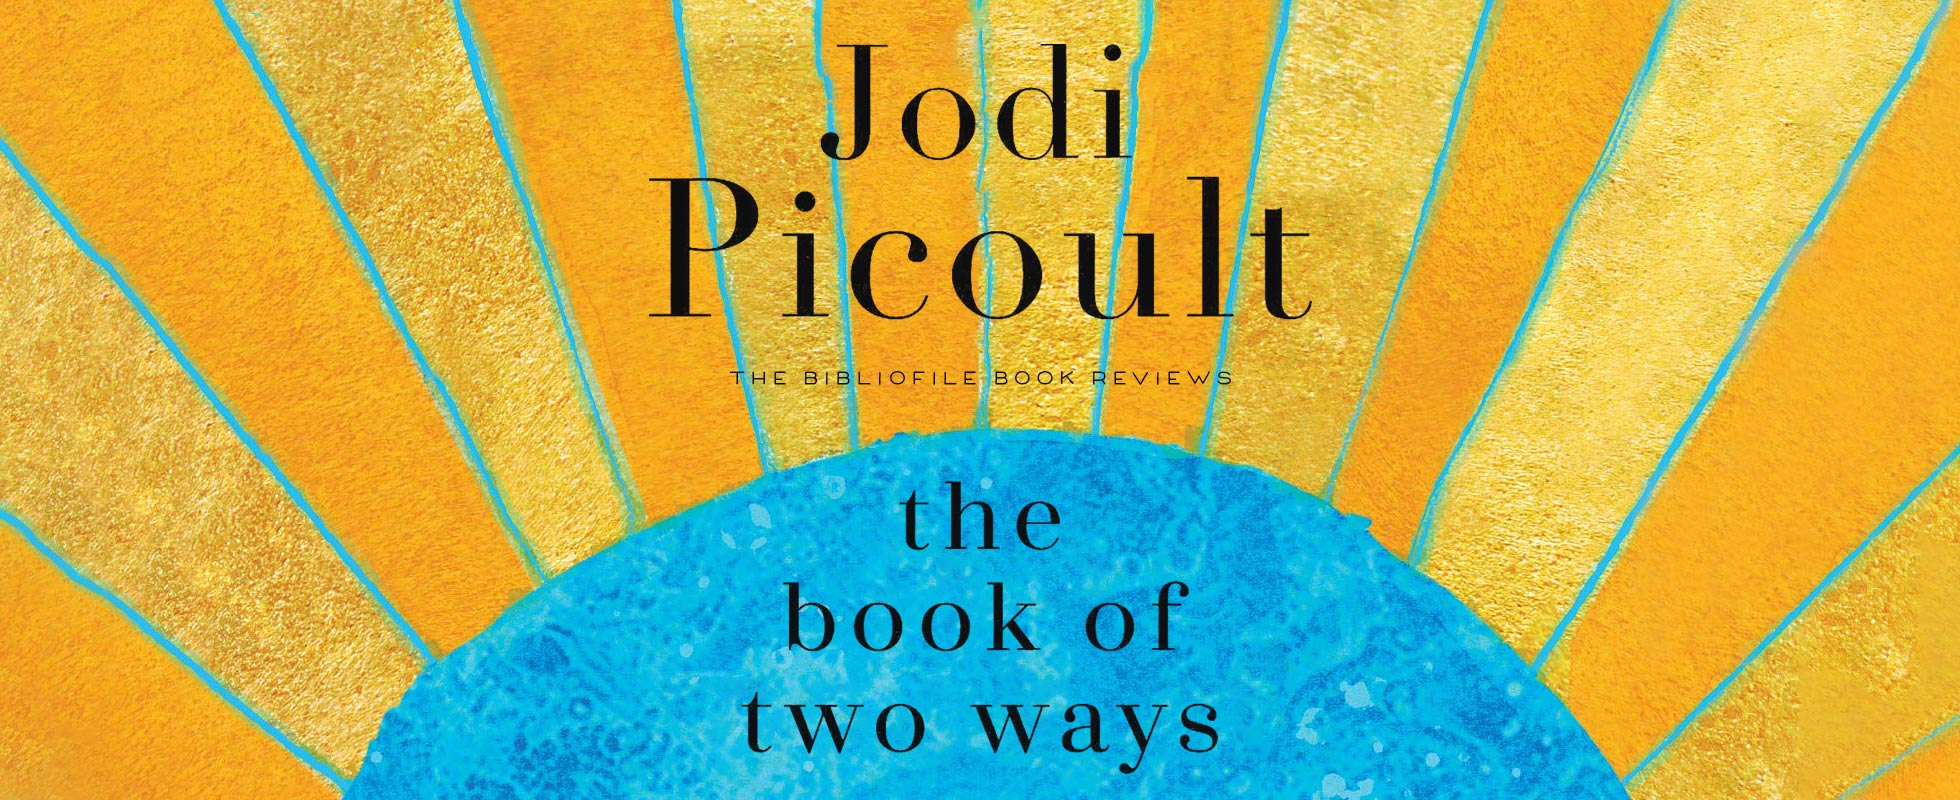 the book of two ways jodi picoult book review plot summary synopsis chapter summary